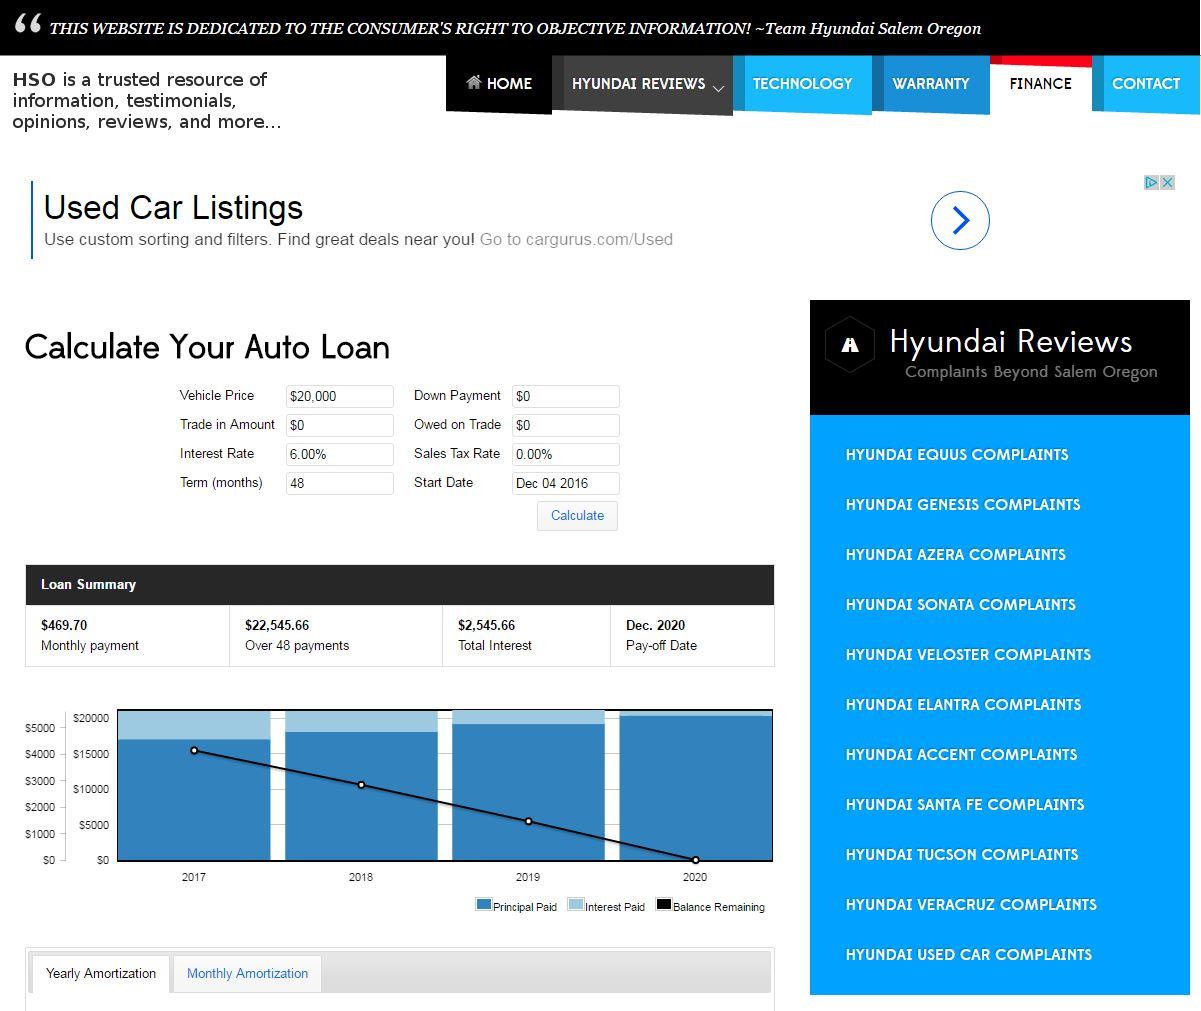 Car Dealer Website Design hso2